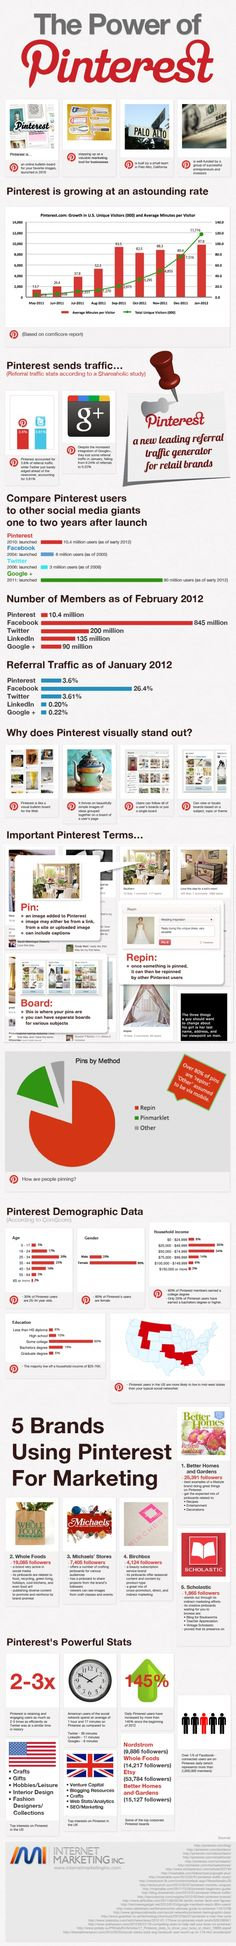 This Is Everything You Need To Know About Pinterest (Infographic) | TechCrunch